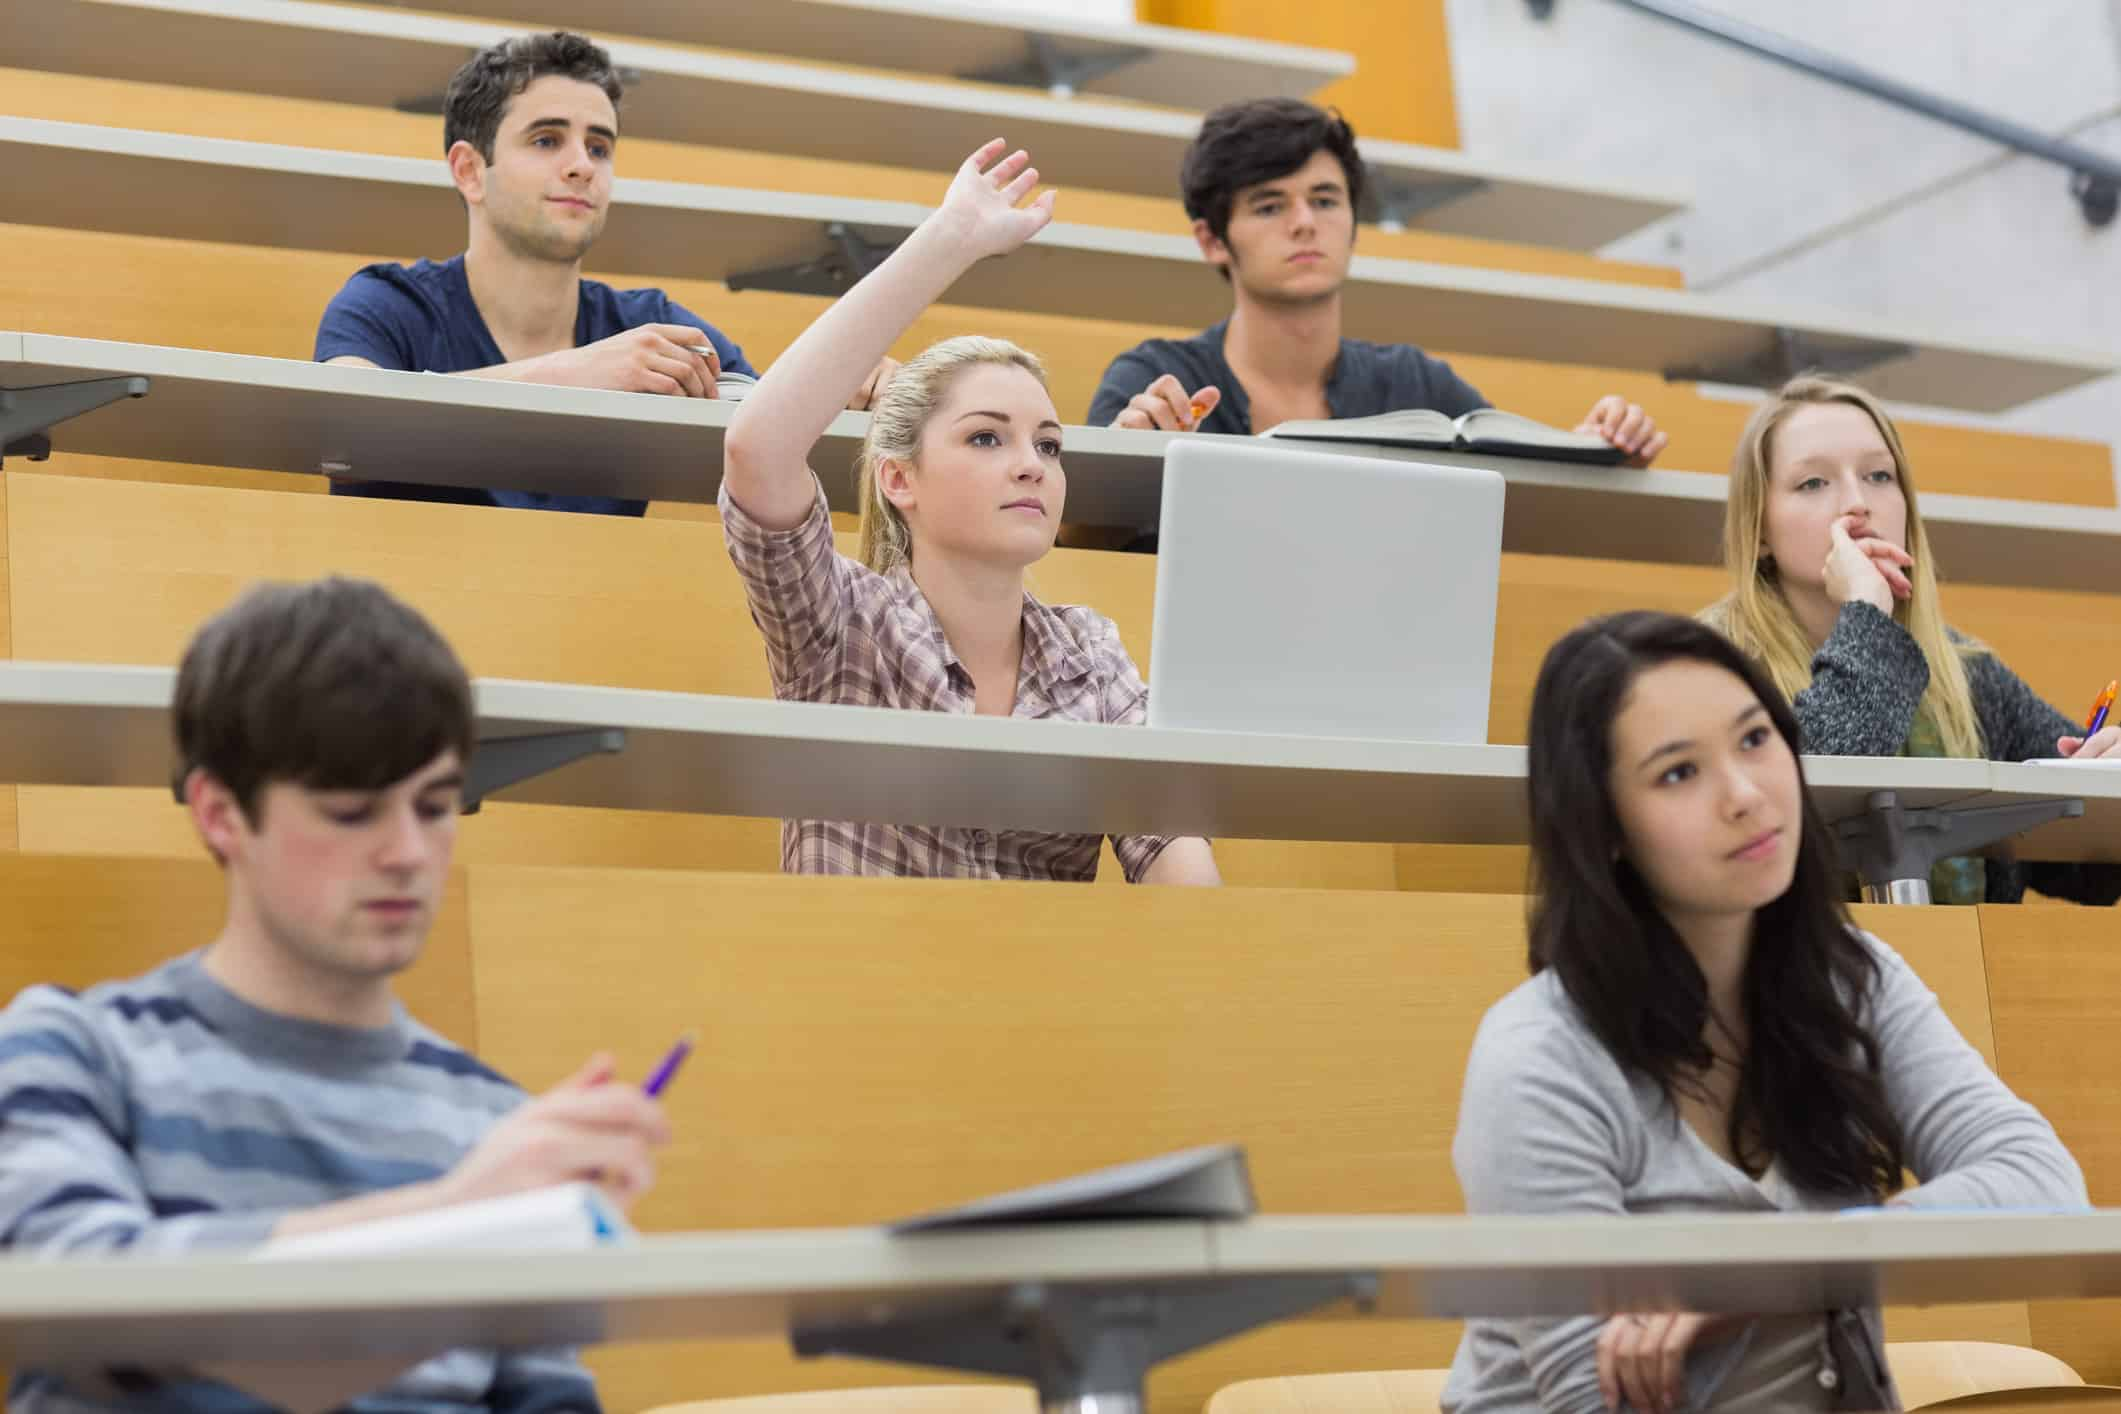 Lecture hall with only a few young students in student loan debt